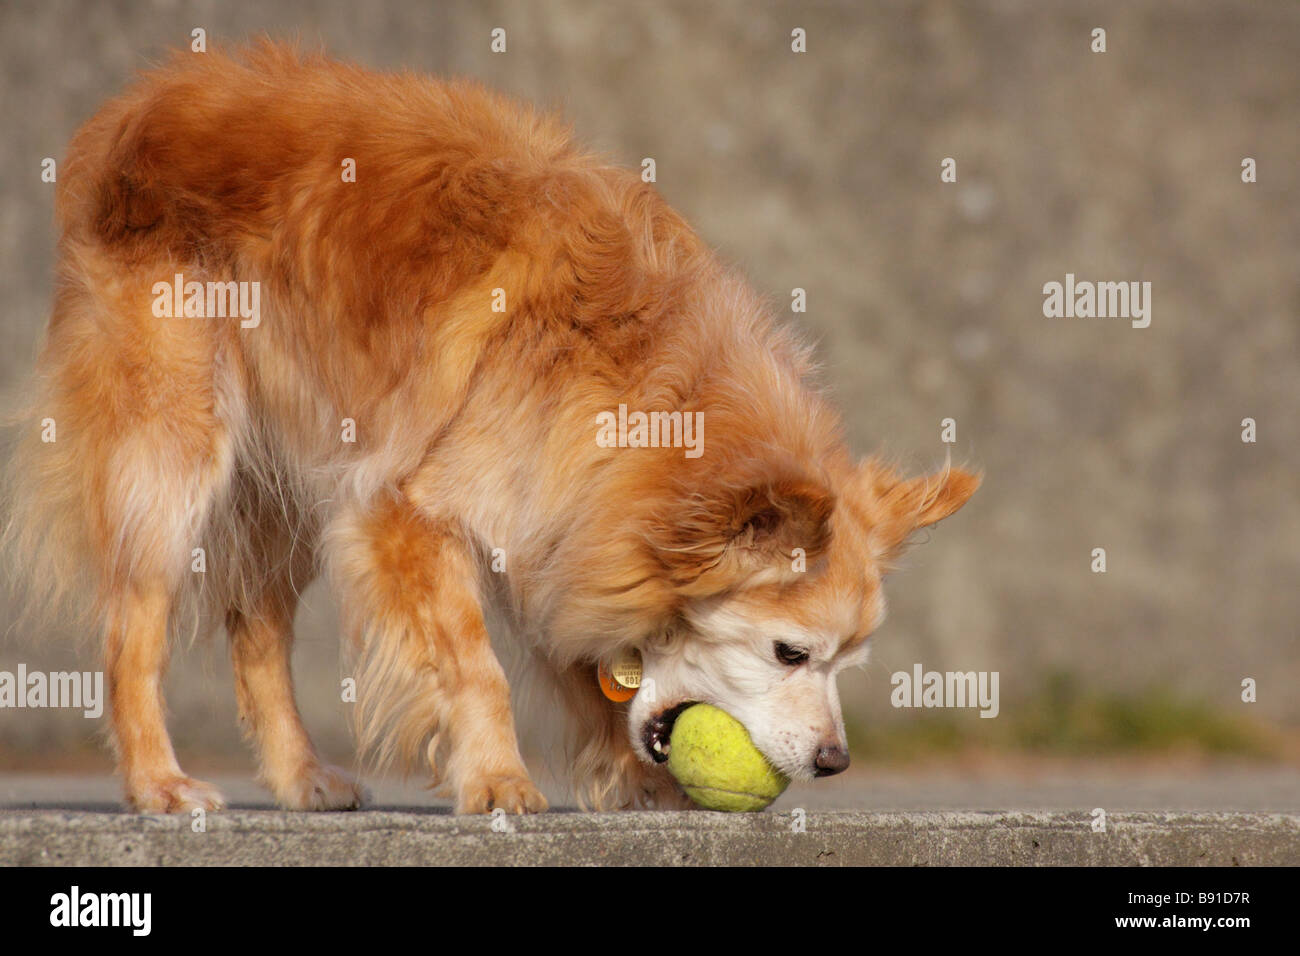 Dog playing with tennis ball Victoria British Columbia Canada - Stock Image